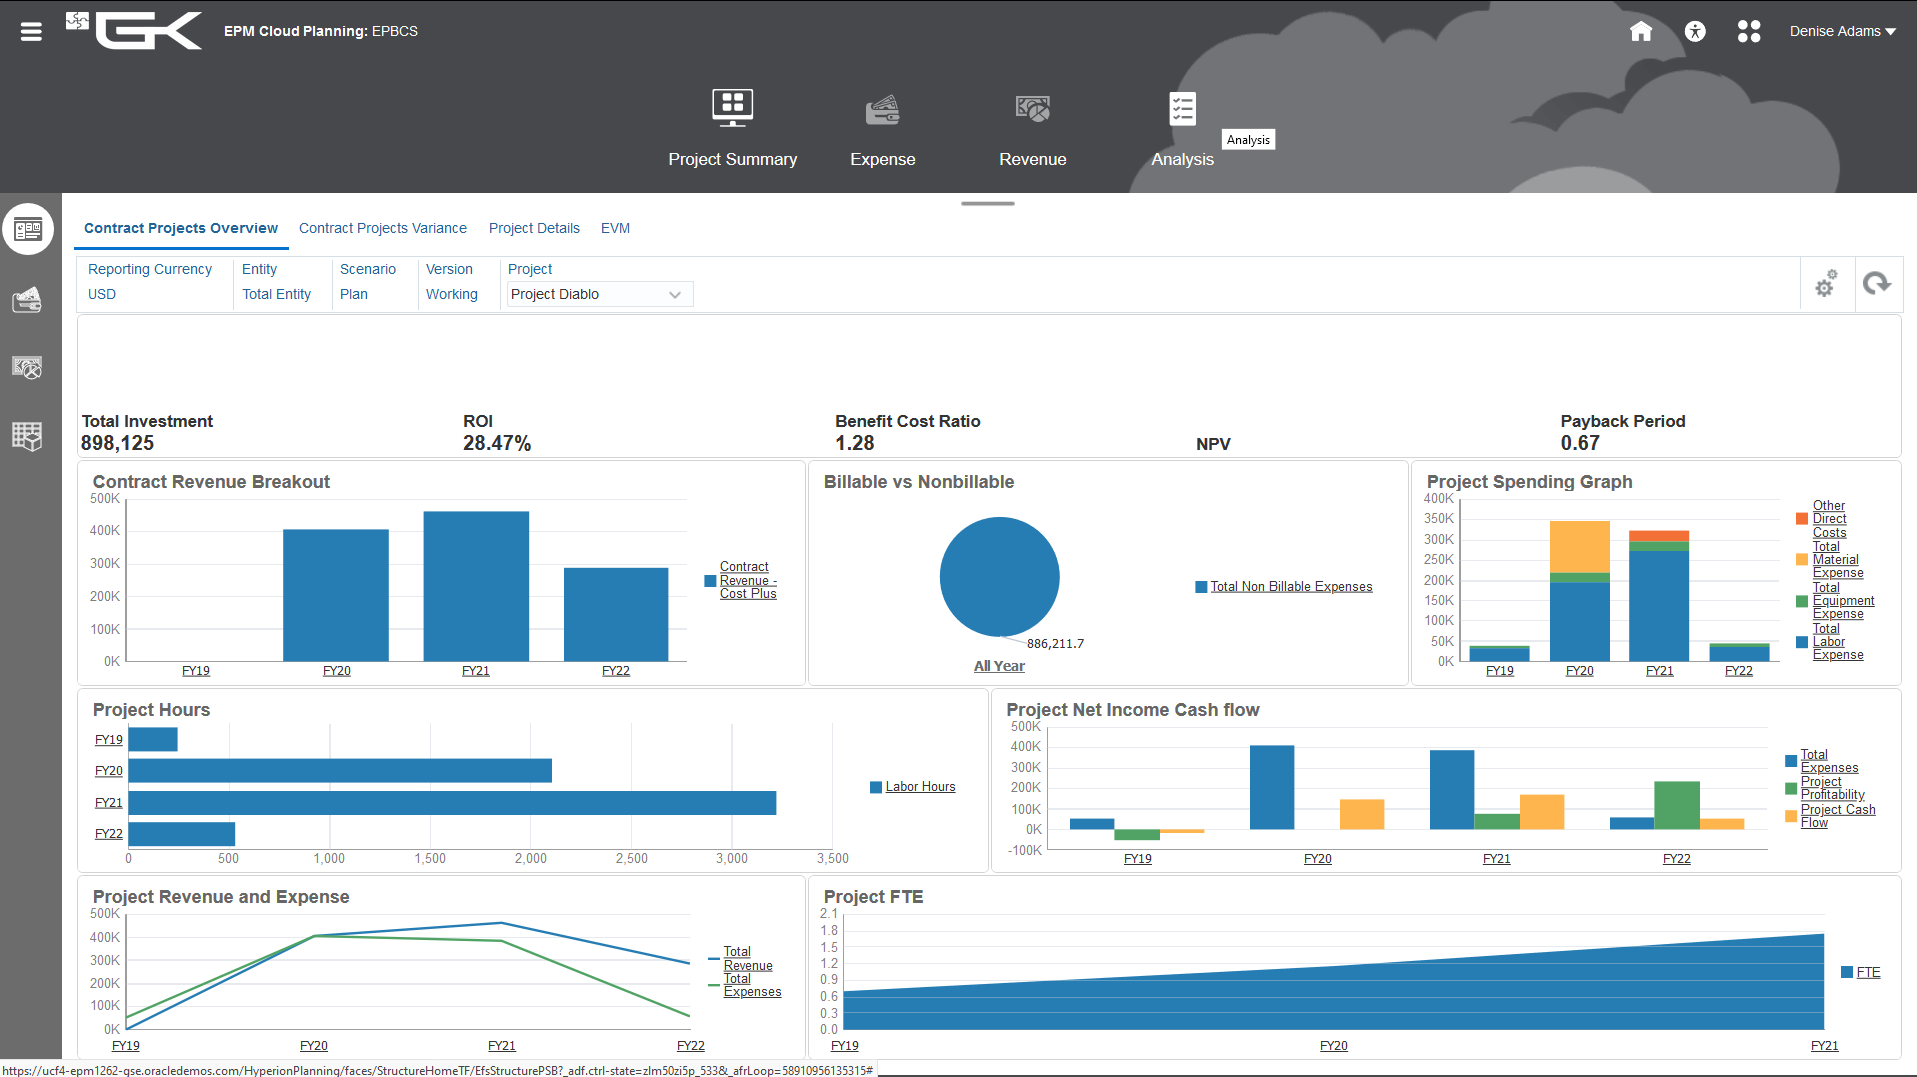 Oracle EPM Projects Dashboard